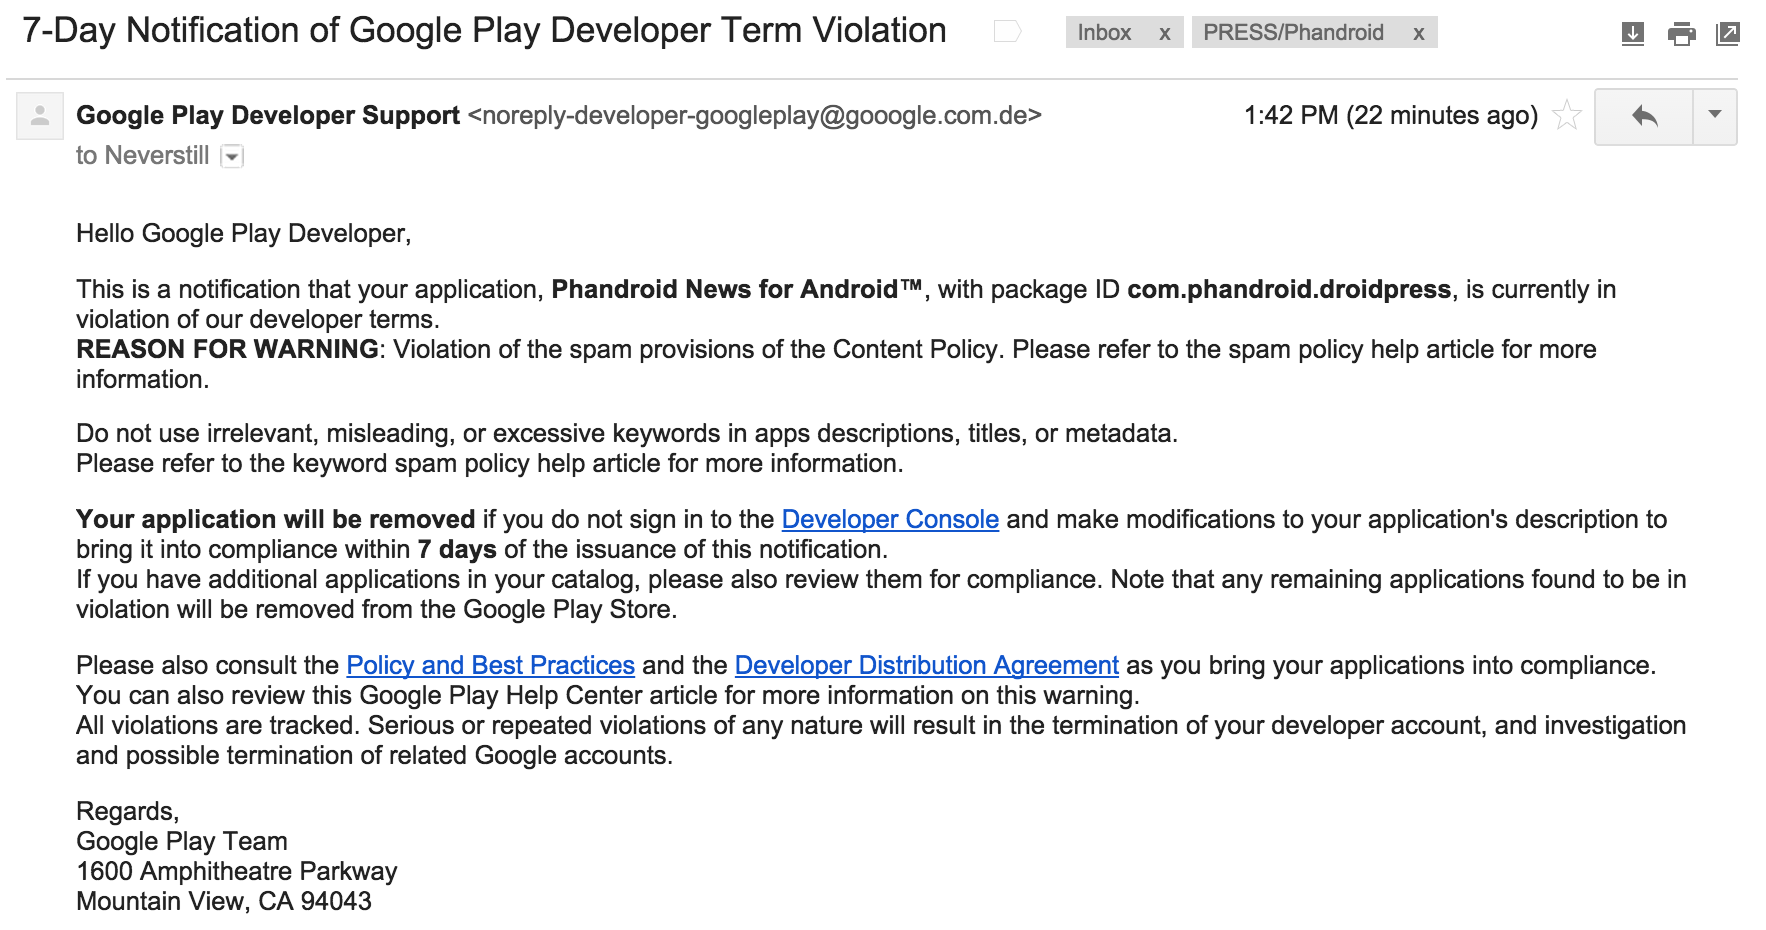 Android developers beware: fake Google Play violation email is a scam looking to steal your password